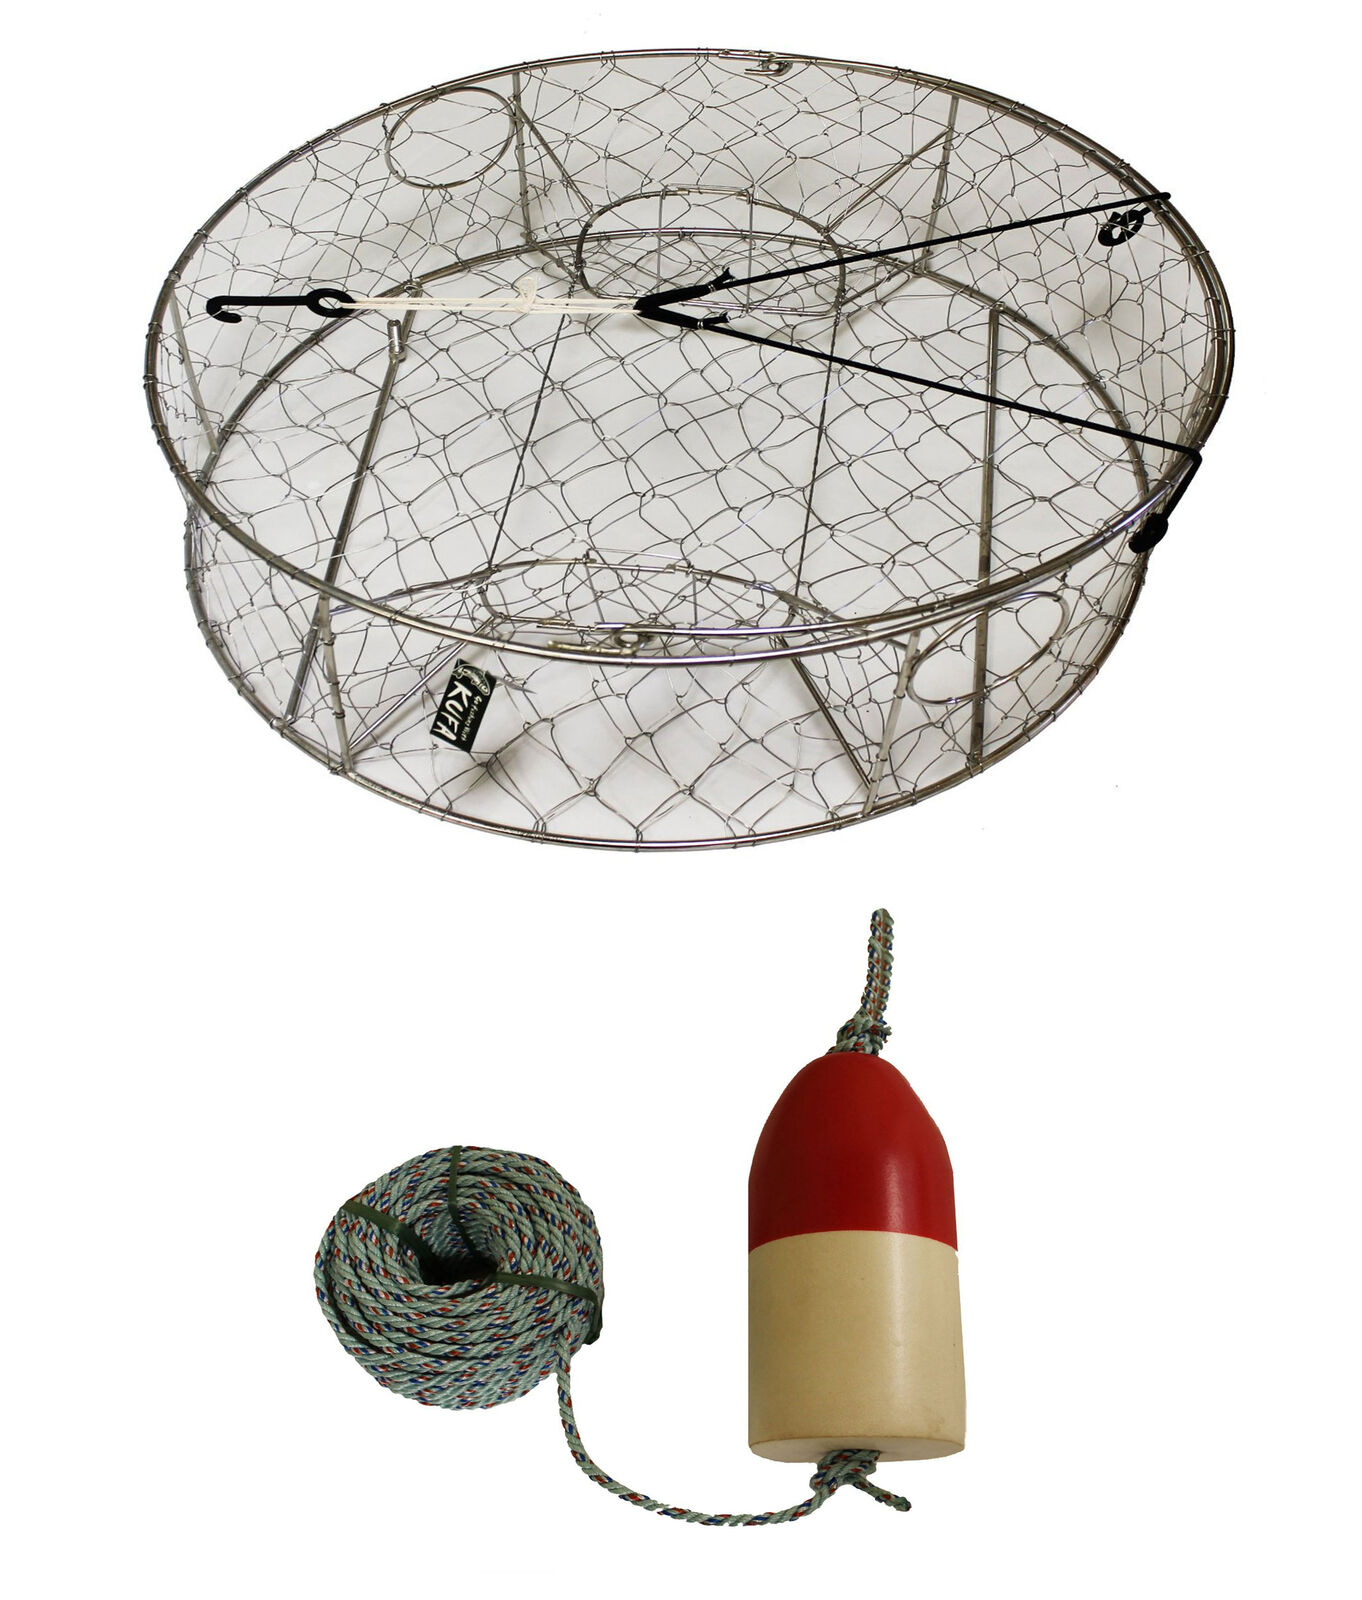 KUFA Stainless Steel Crab Trap with Zinc Anode & Accessories (CT100+FQL103+ZIN1)